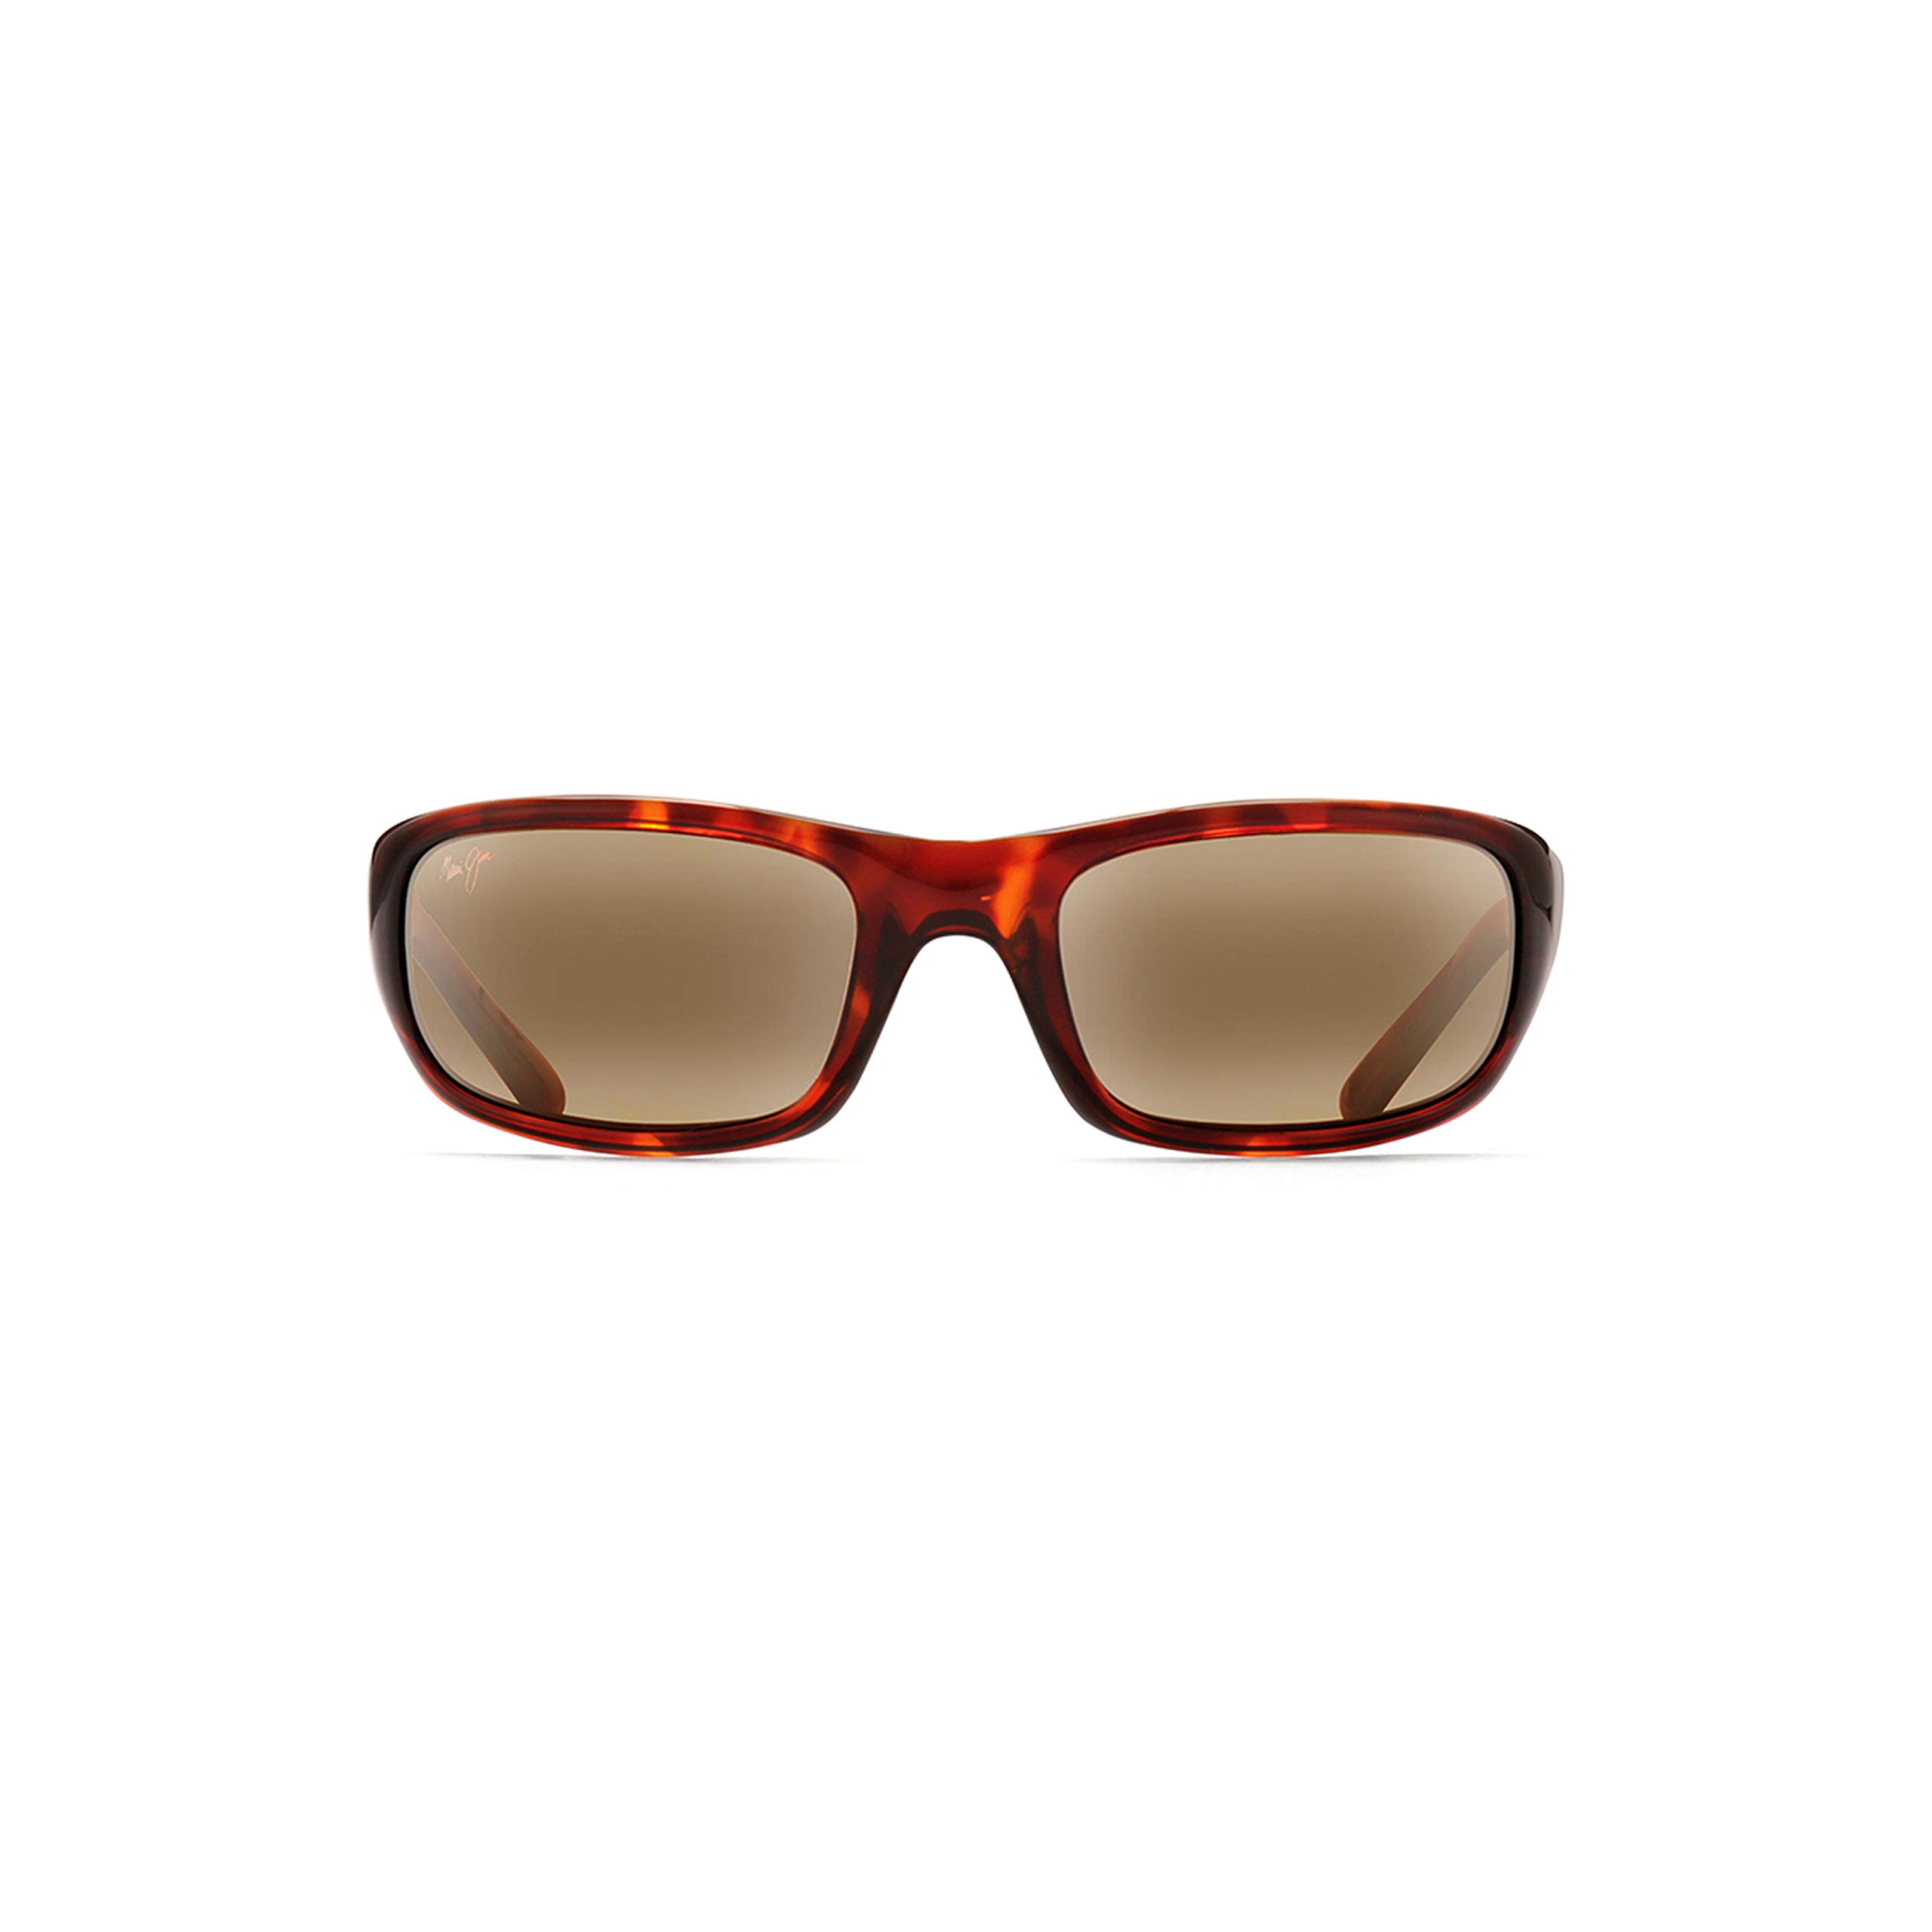 Maui Jim Stingray H103-10 | Sunglasses, Tortoise, 56 mm by Maui Jim